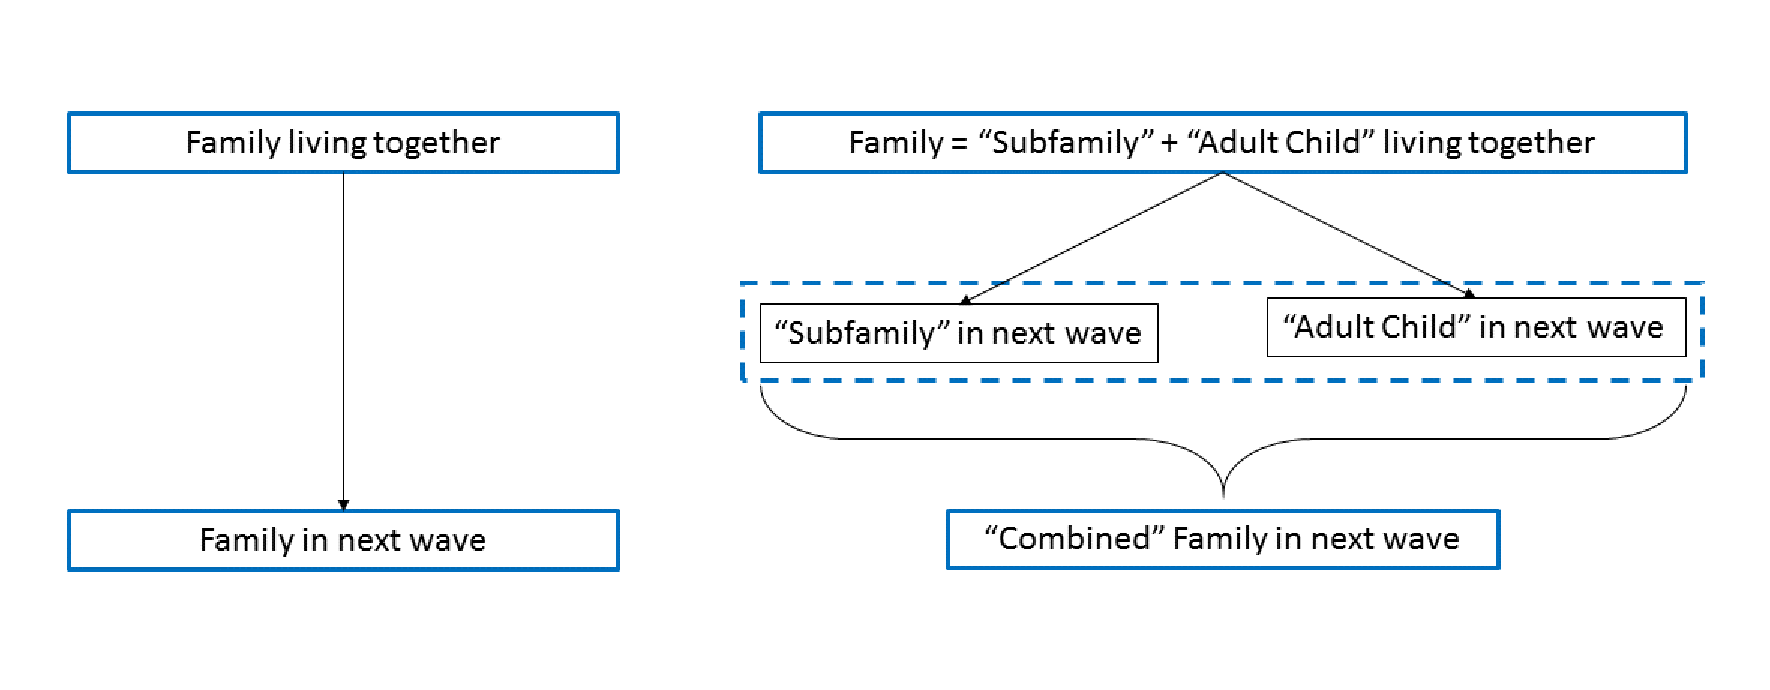 Figure 2. Combining subfamily with adult child in PSID data. See accessible link for data description.